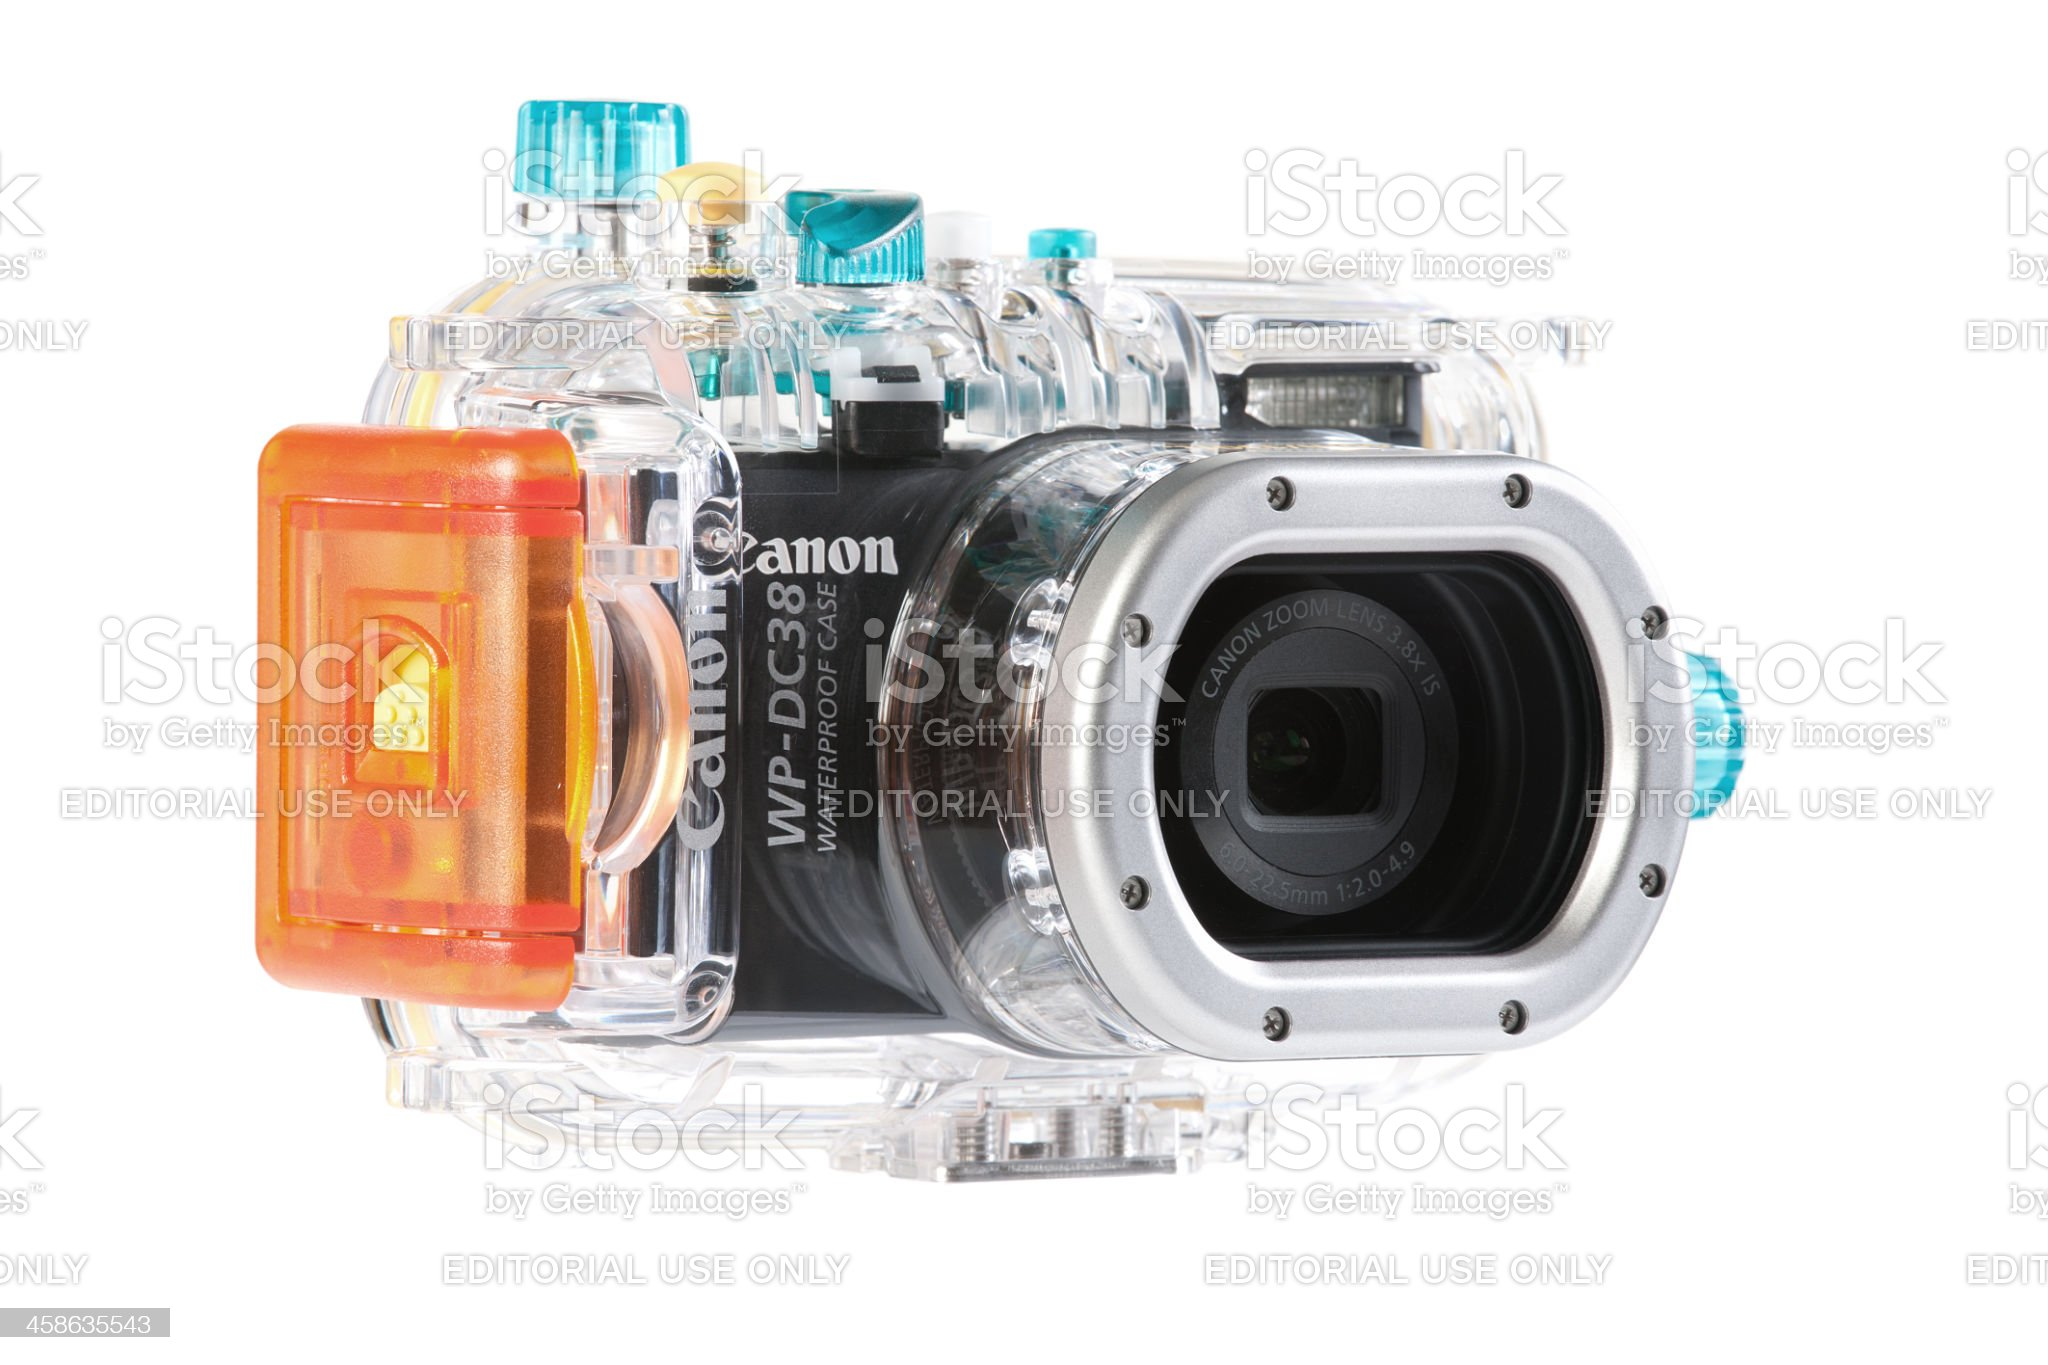 Canon S95 in underwater case royalty-free stock photo